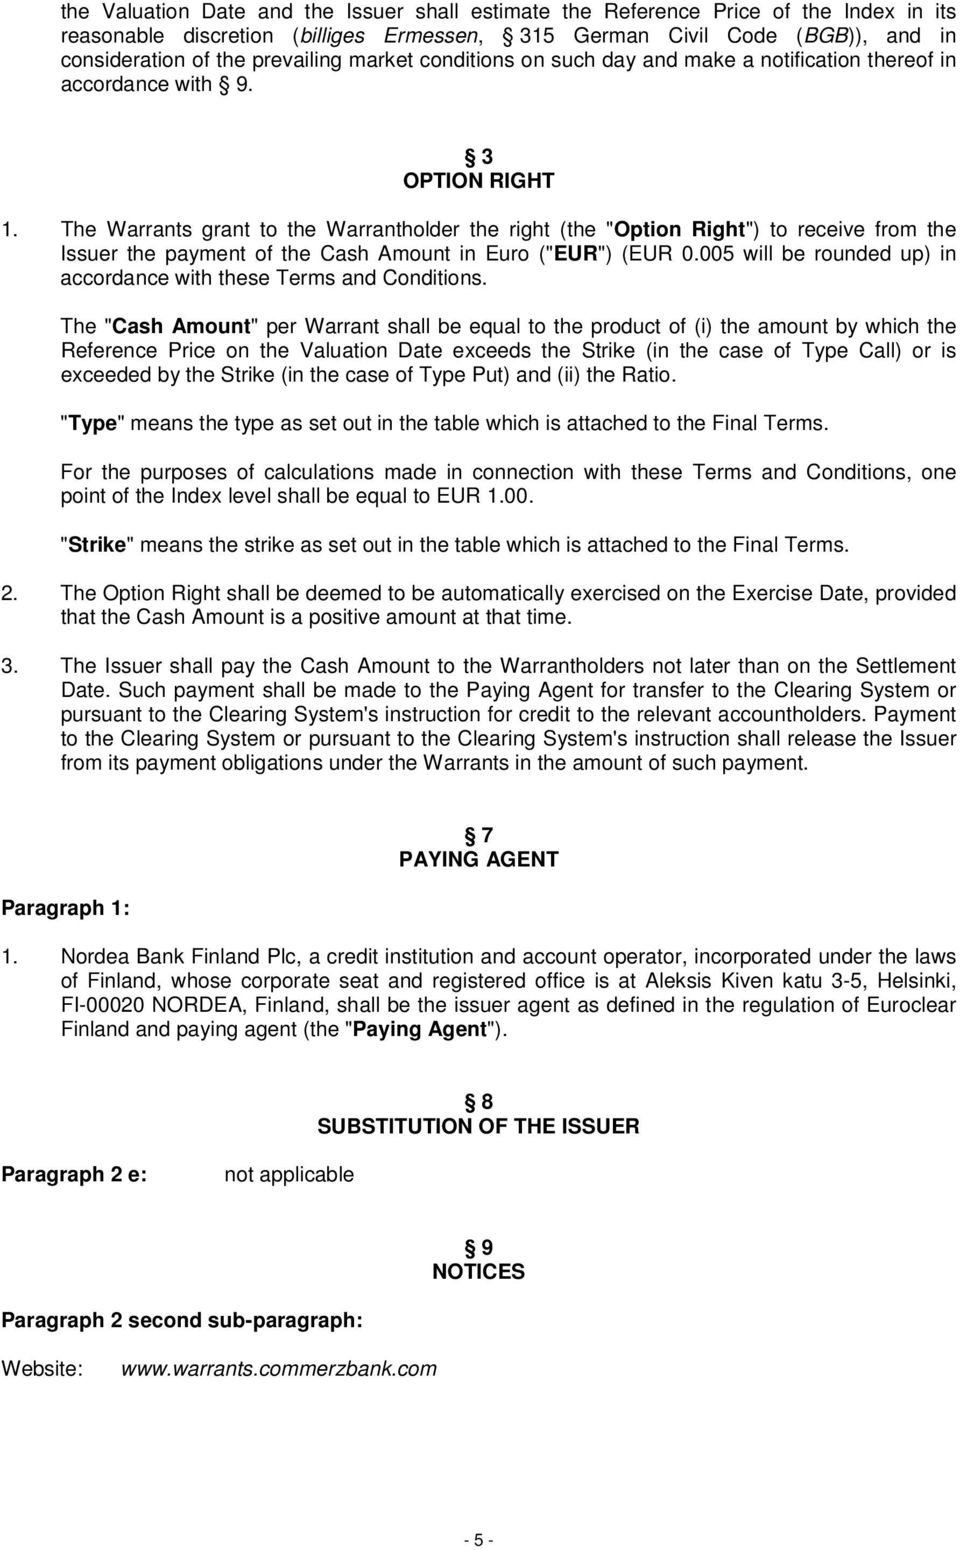 "The Warrants grant to the Warrantholder the right (the ""Option Right"") to receive from the Issuer the payment of the Cash Amount in Euro (""EUR"") (EUR 0."